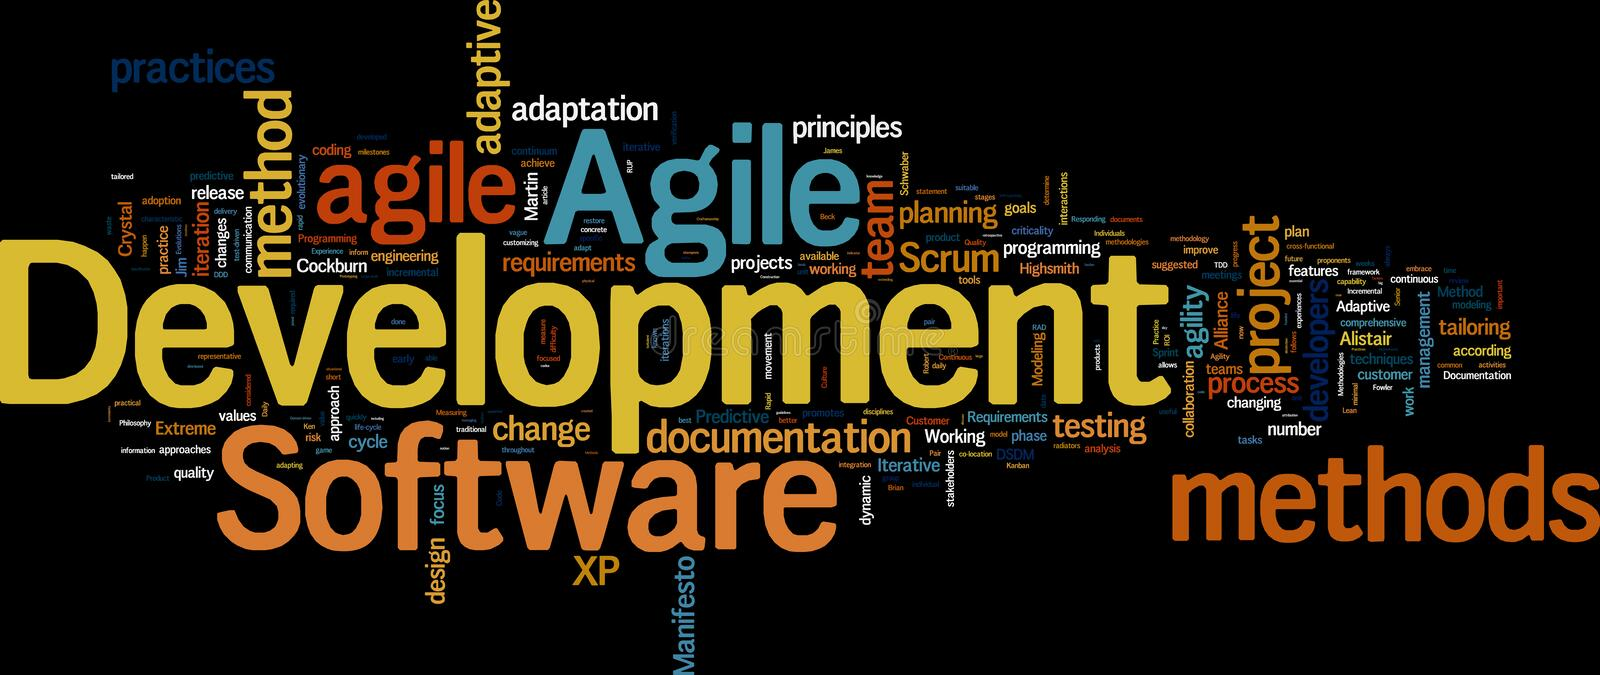 Agile Development Management. Agile software development management methods dense word cloud